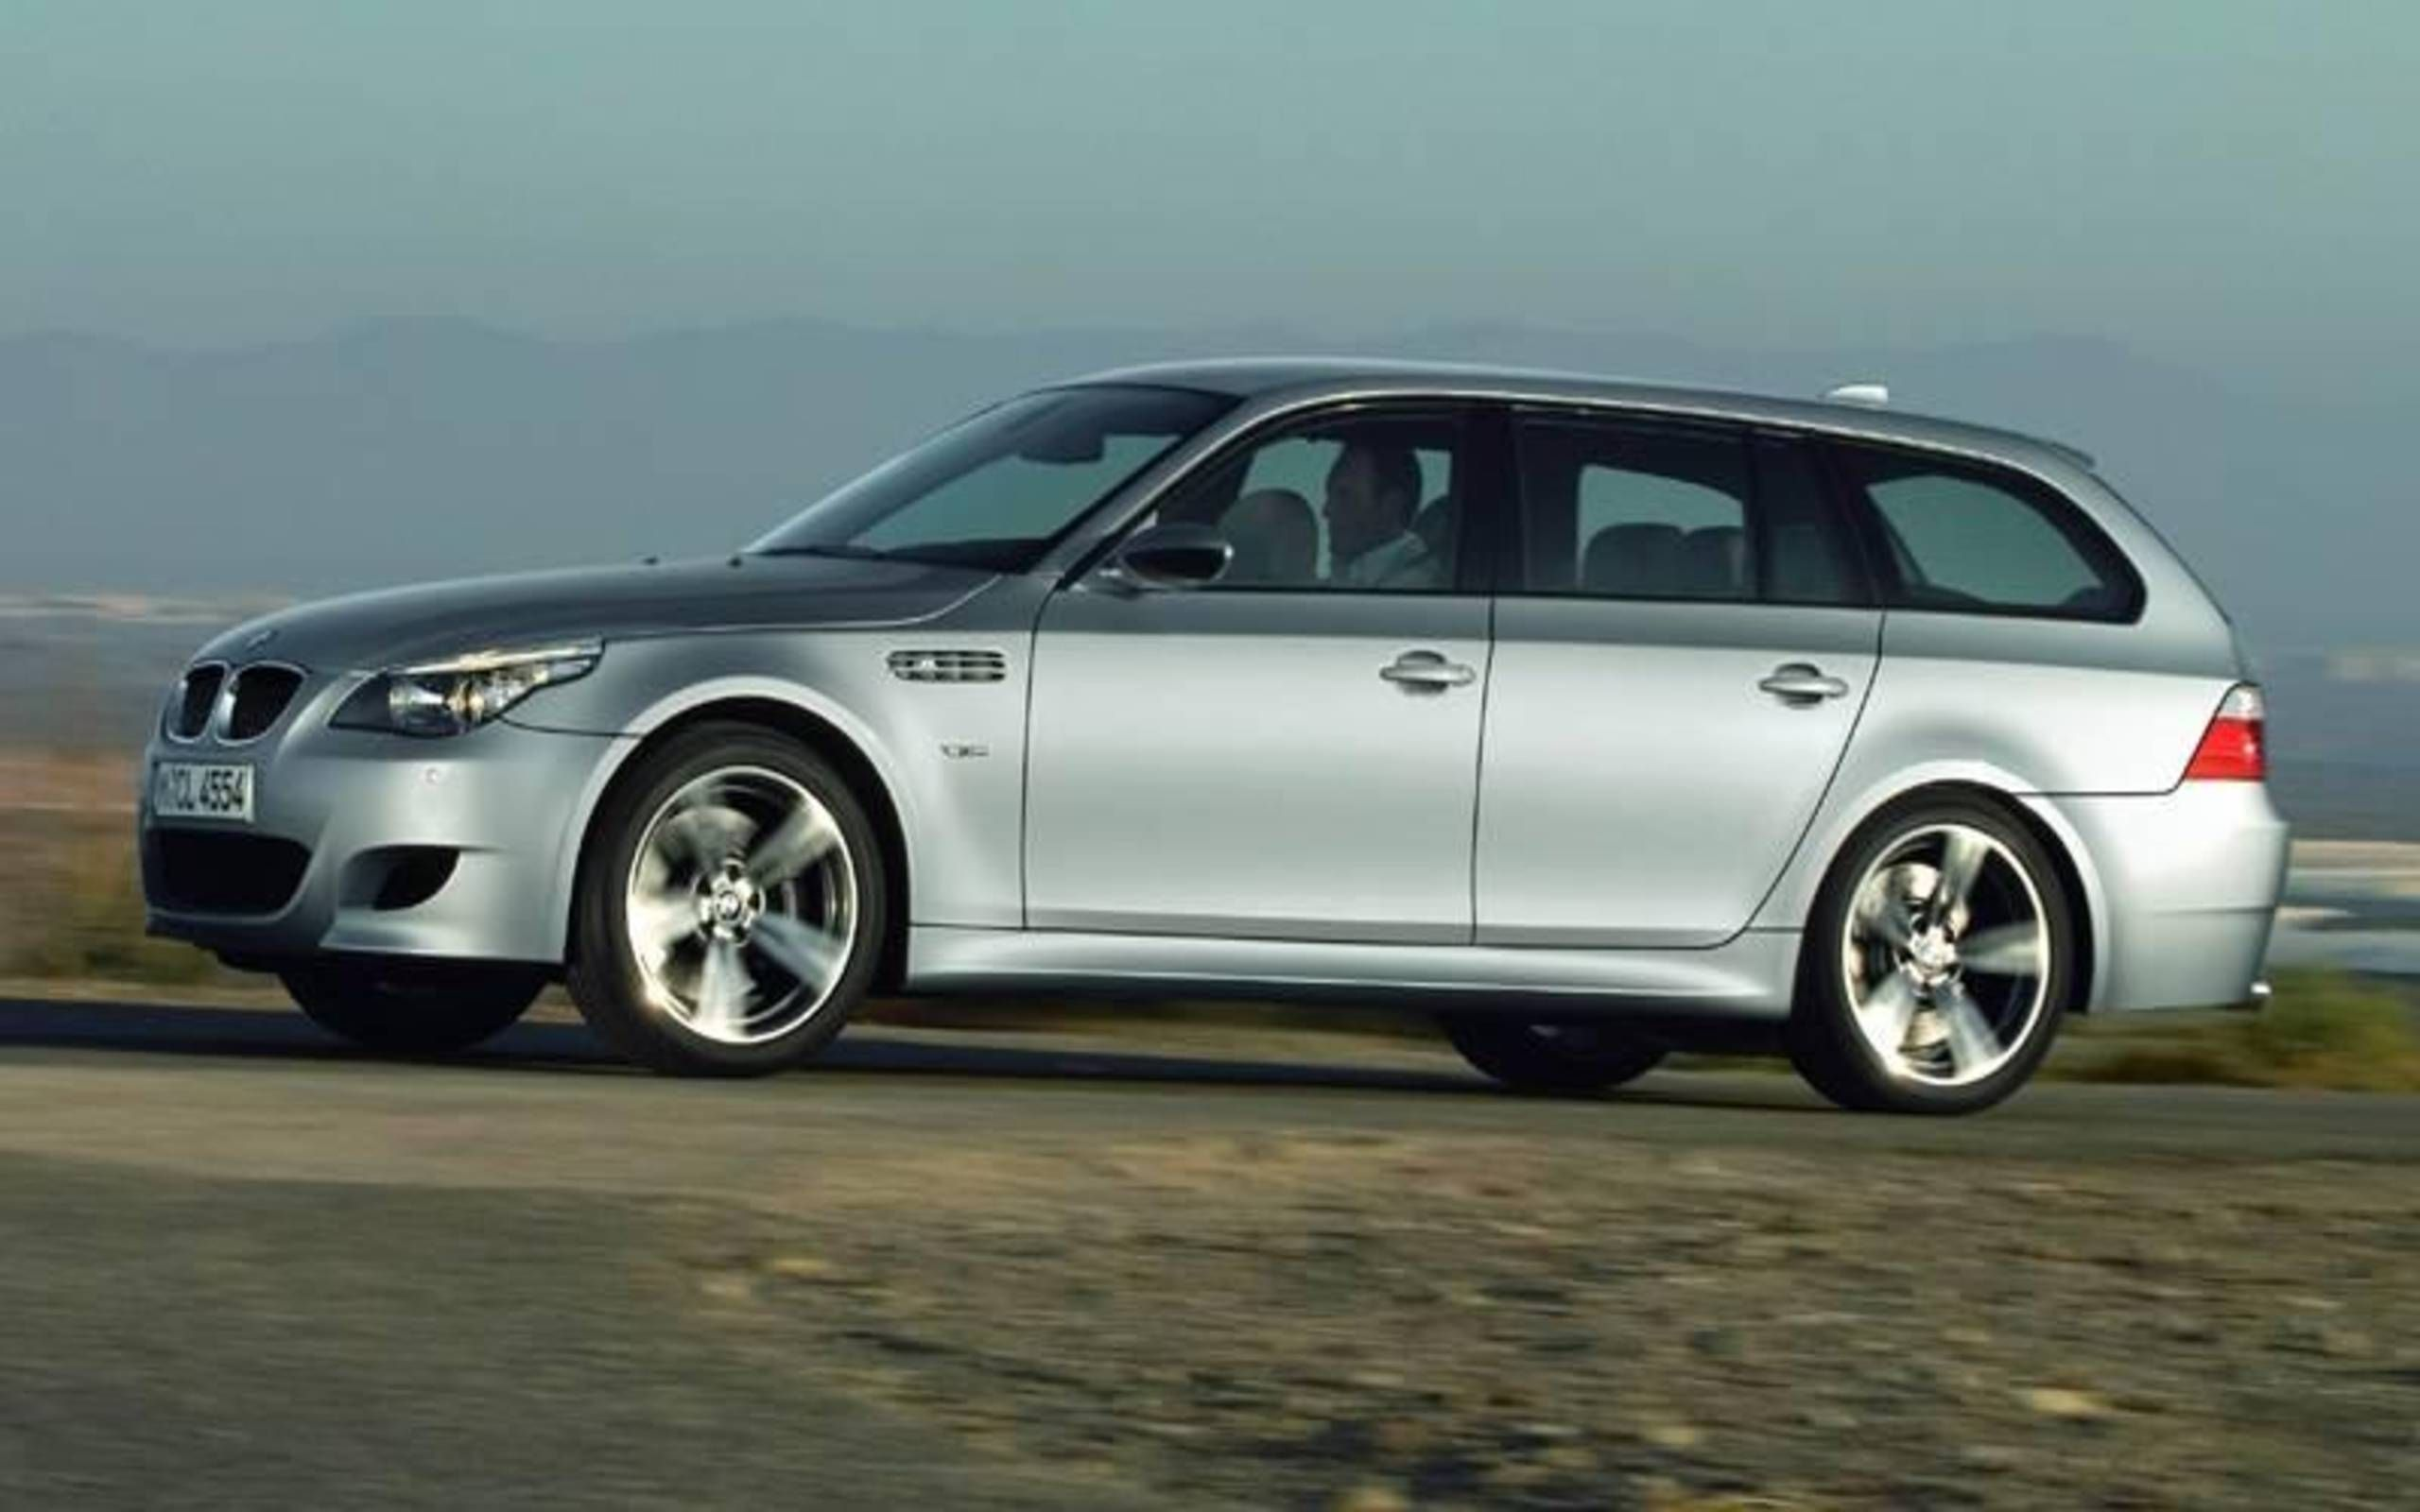 2008 Bmw M5 Touring Here S The Scoop On The Super Wagon Bmw Says It Won T Bring To The Us